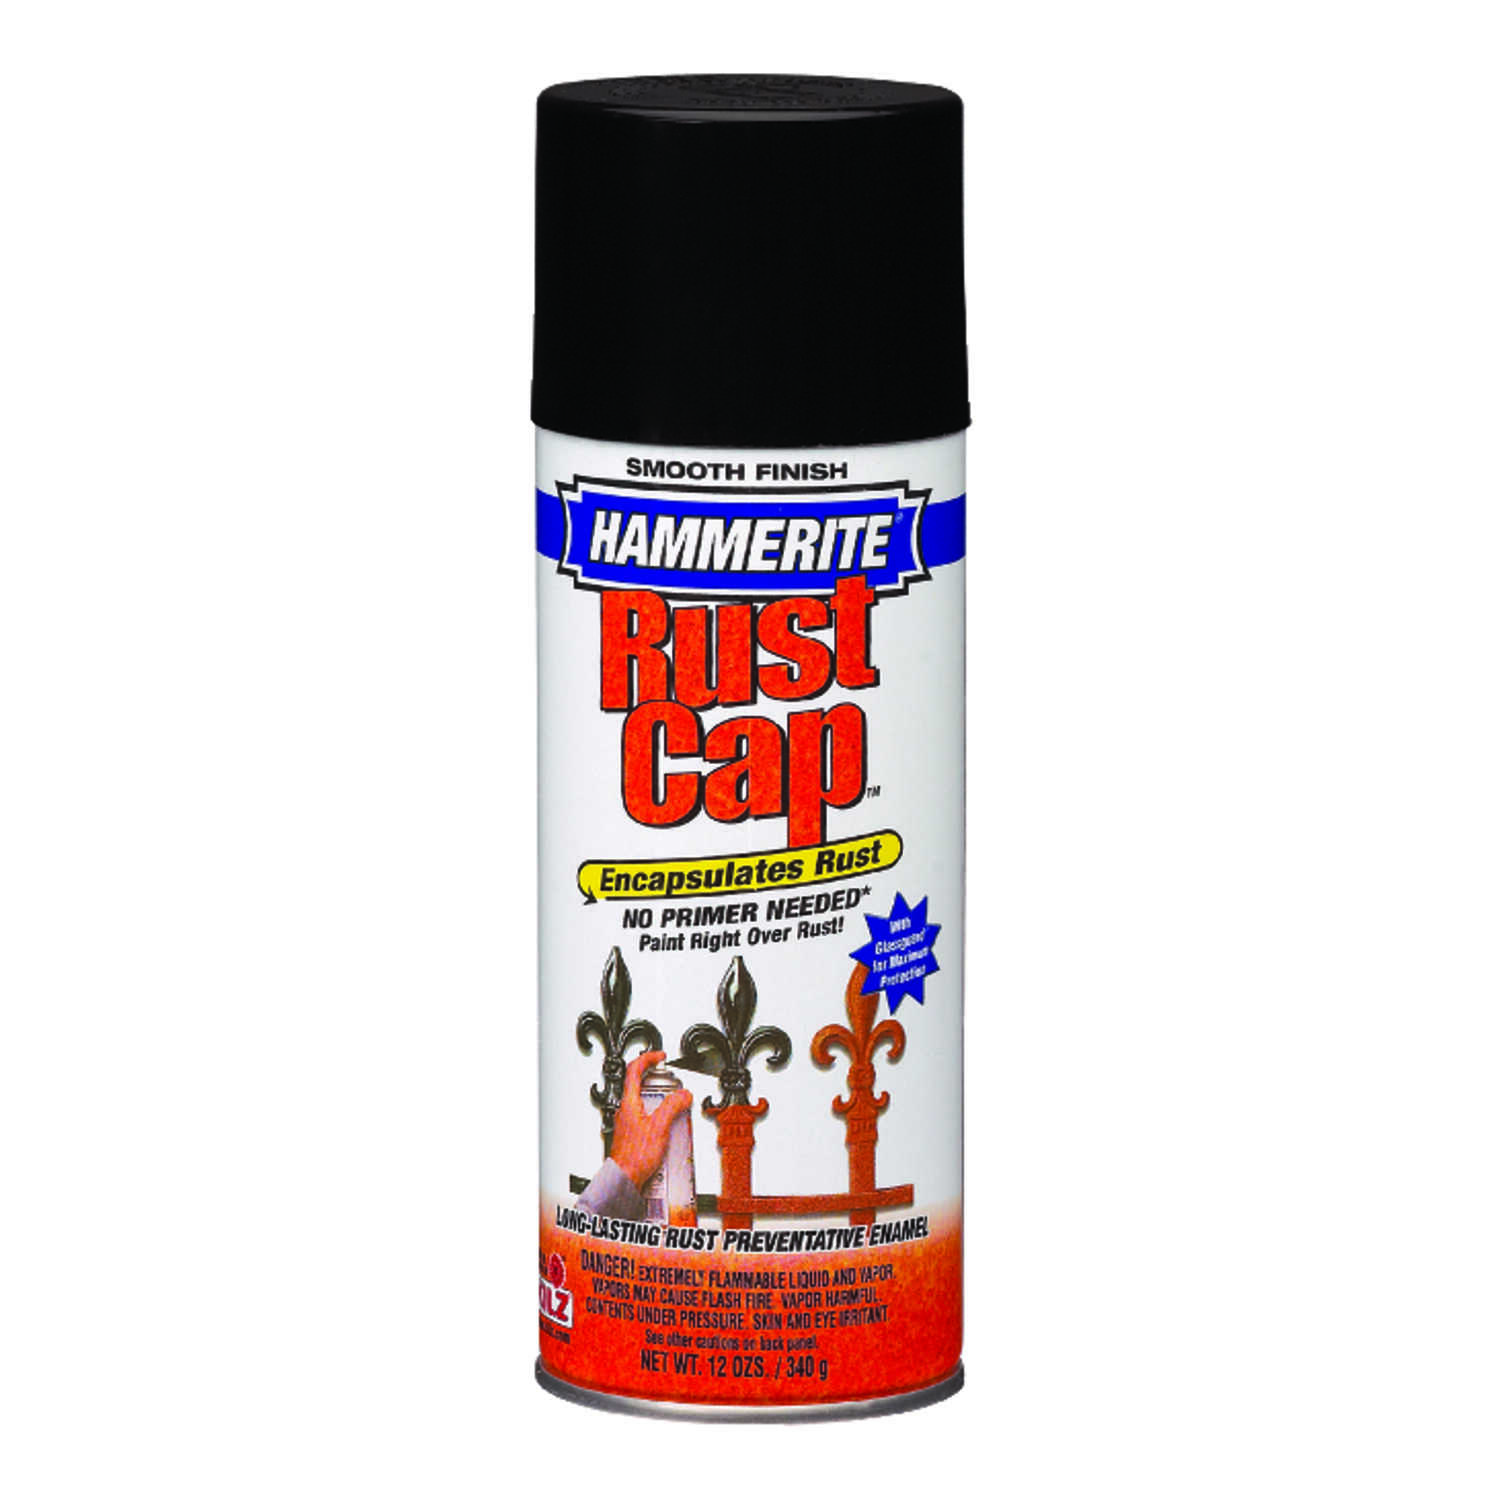 Hammerite  Rust Cap  Gloss  Black  Smooth Enamel Finish Spray  12 oz.